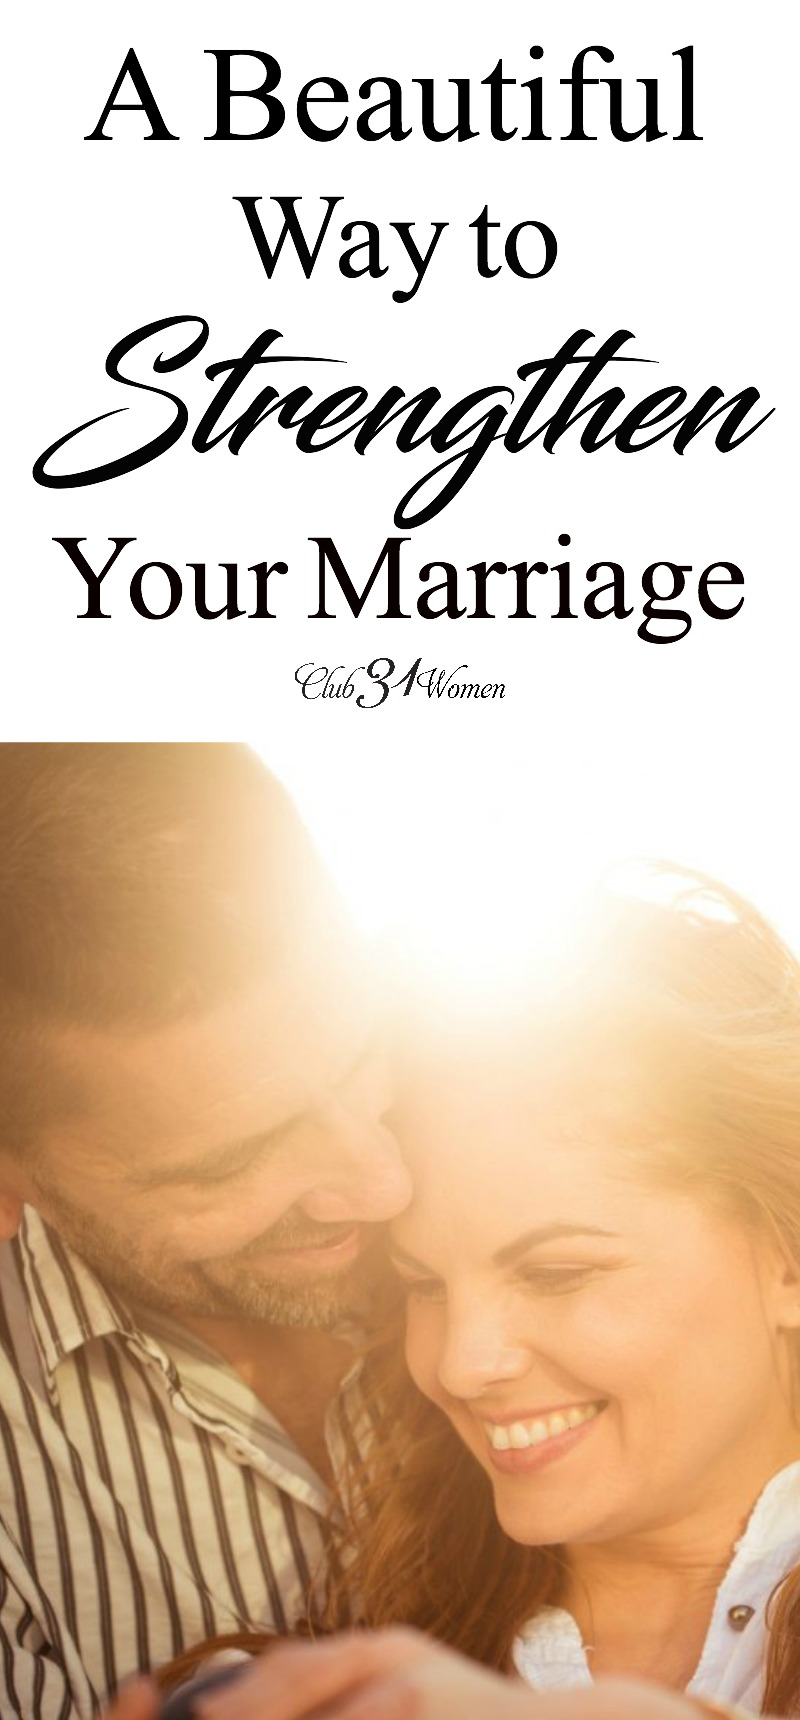 Are are you ready to strengthen your marriage? Grow closer to your husband? Here's practical, encouraging help for you both! via @Club31Women